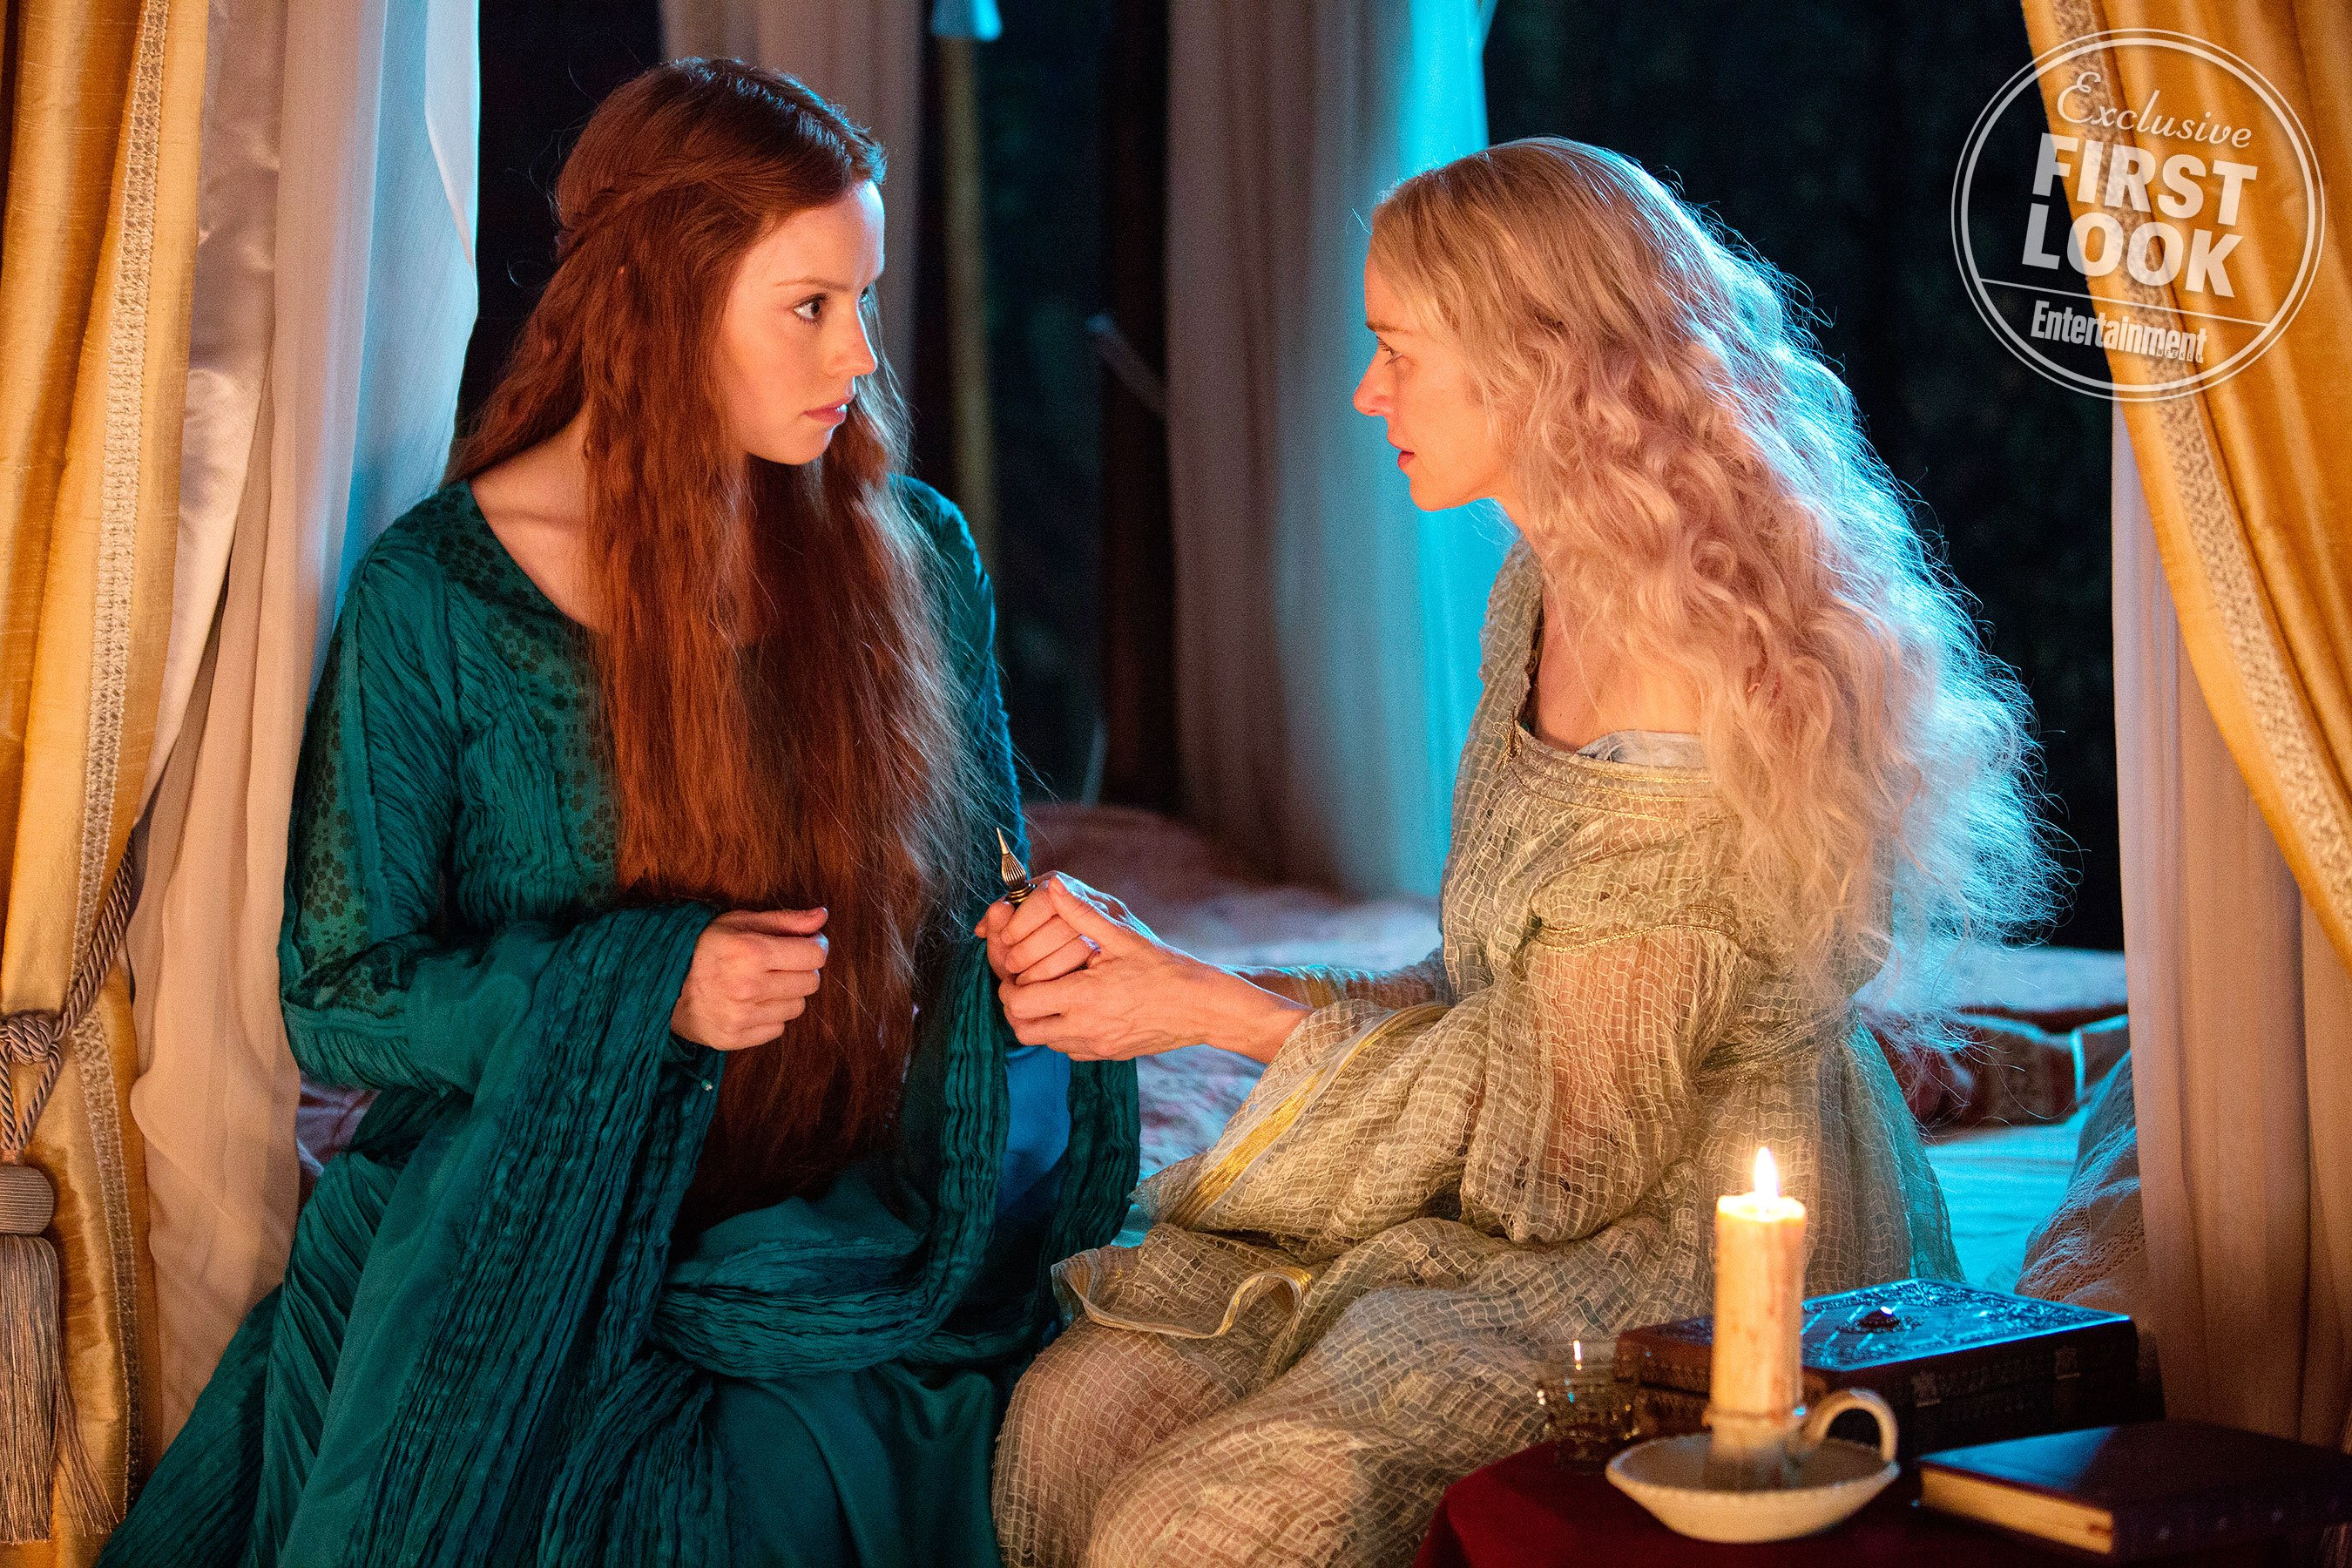 Daisy Ridley, Naomi Watts star in Ophelia movie first look